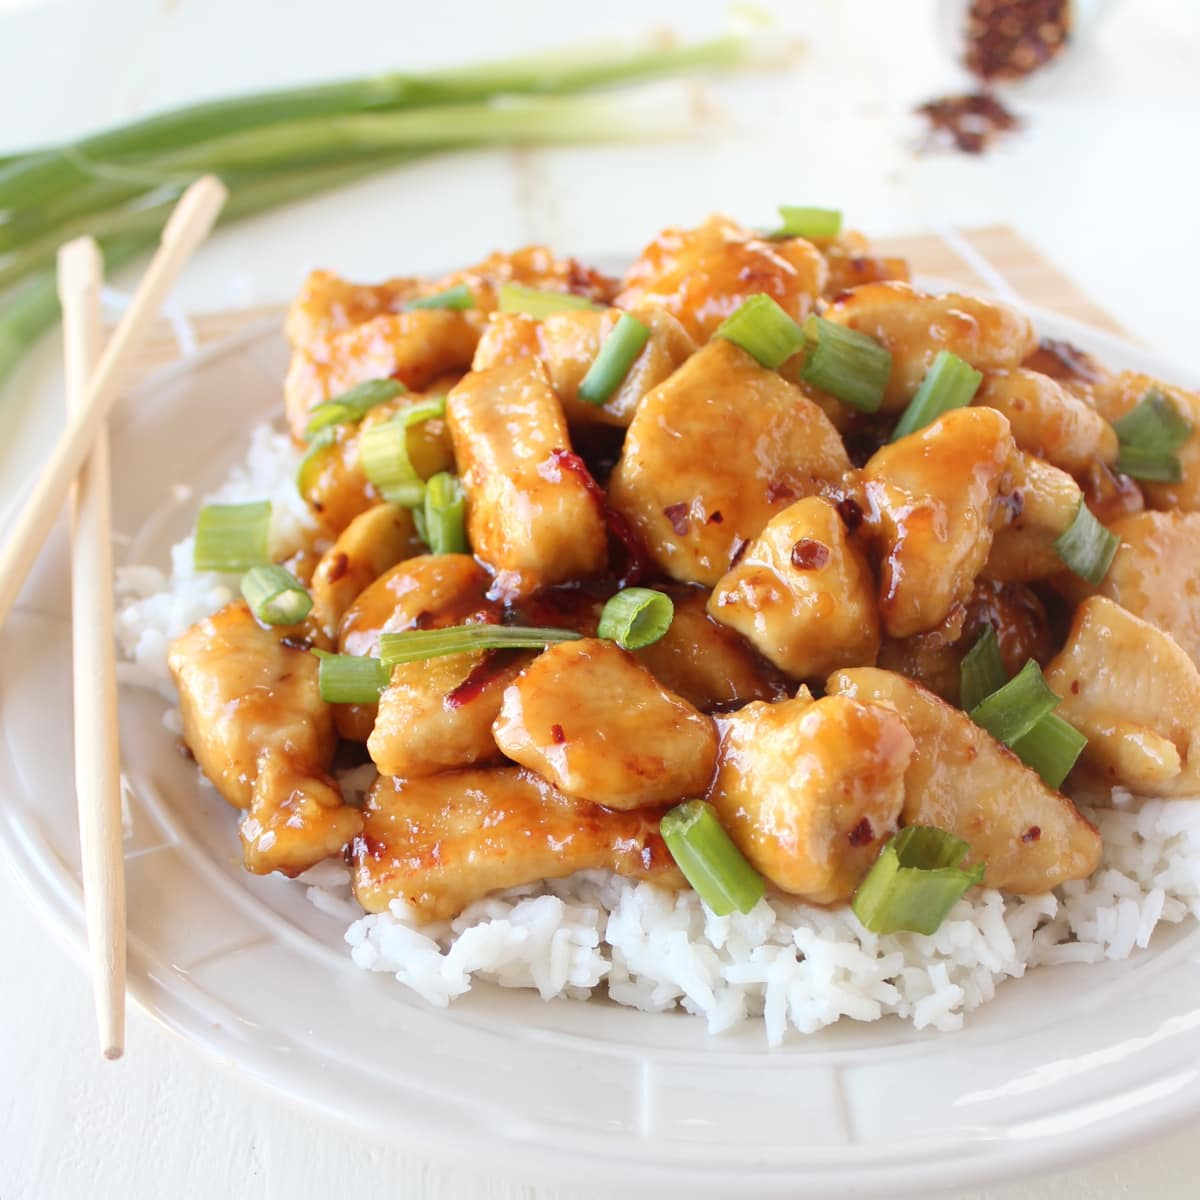 Gluten free chinese honey chicken recipe whitneybond forumfinder Gallery